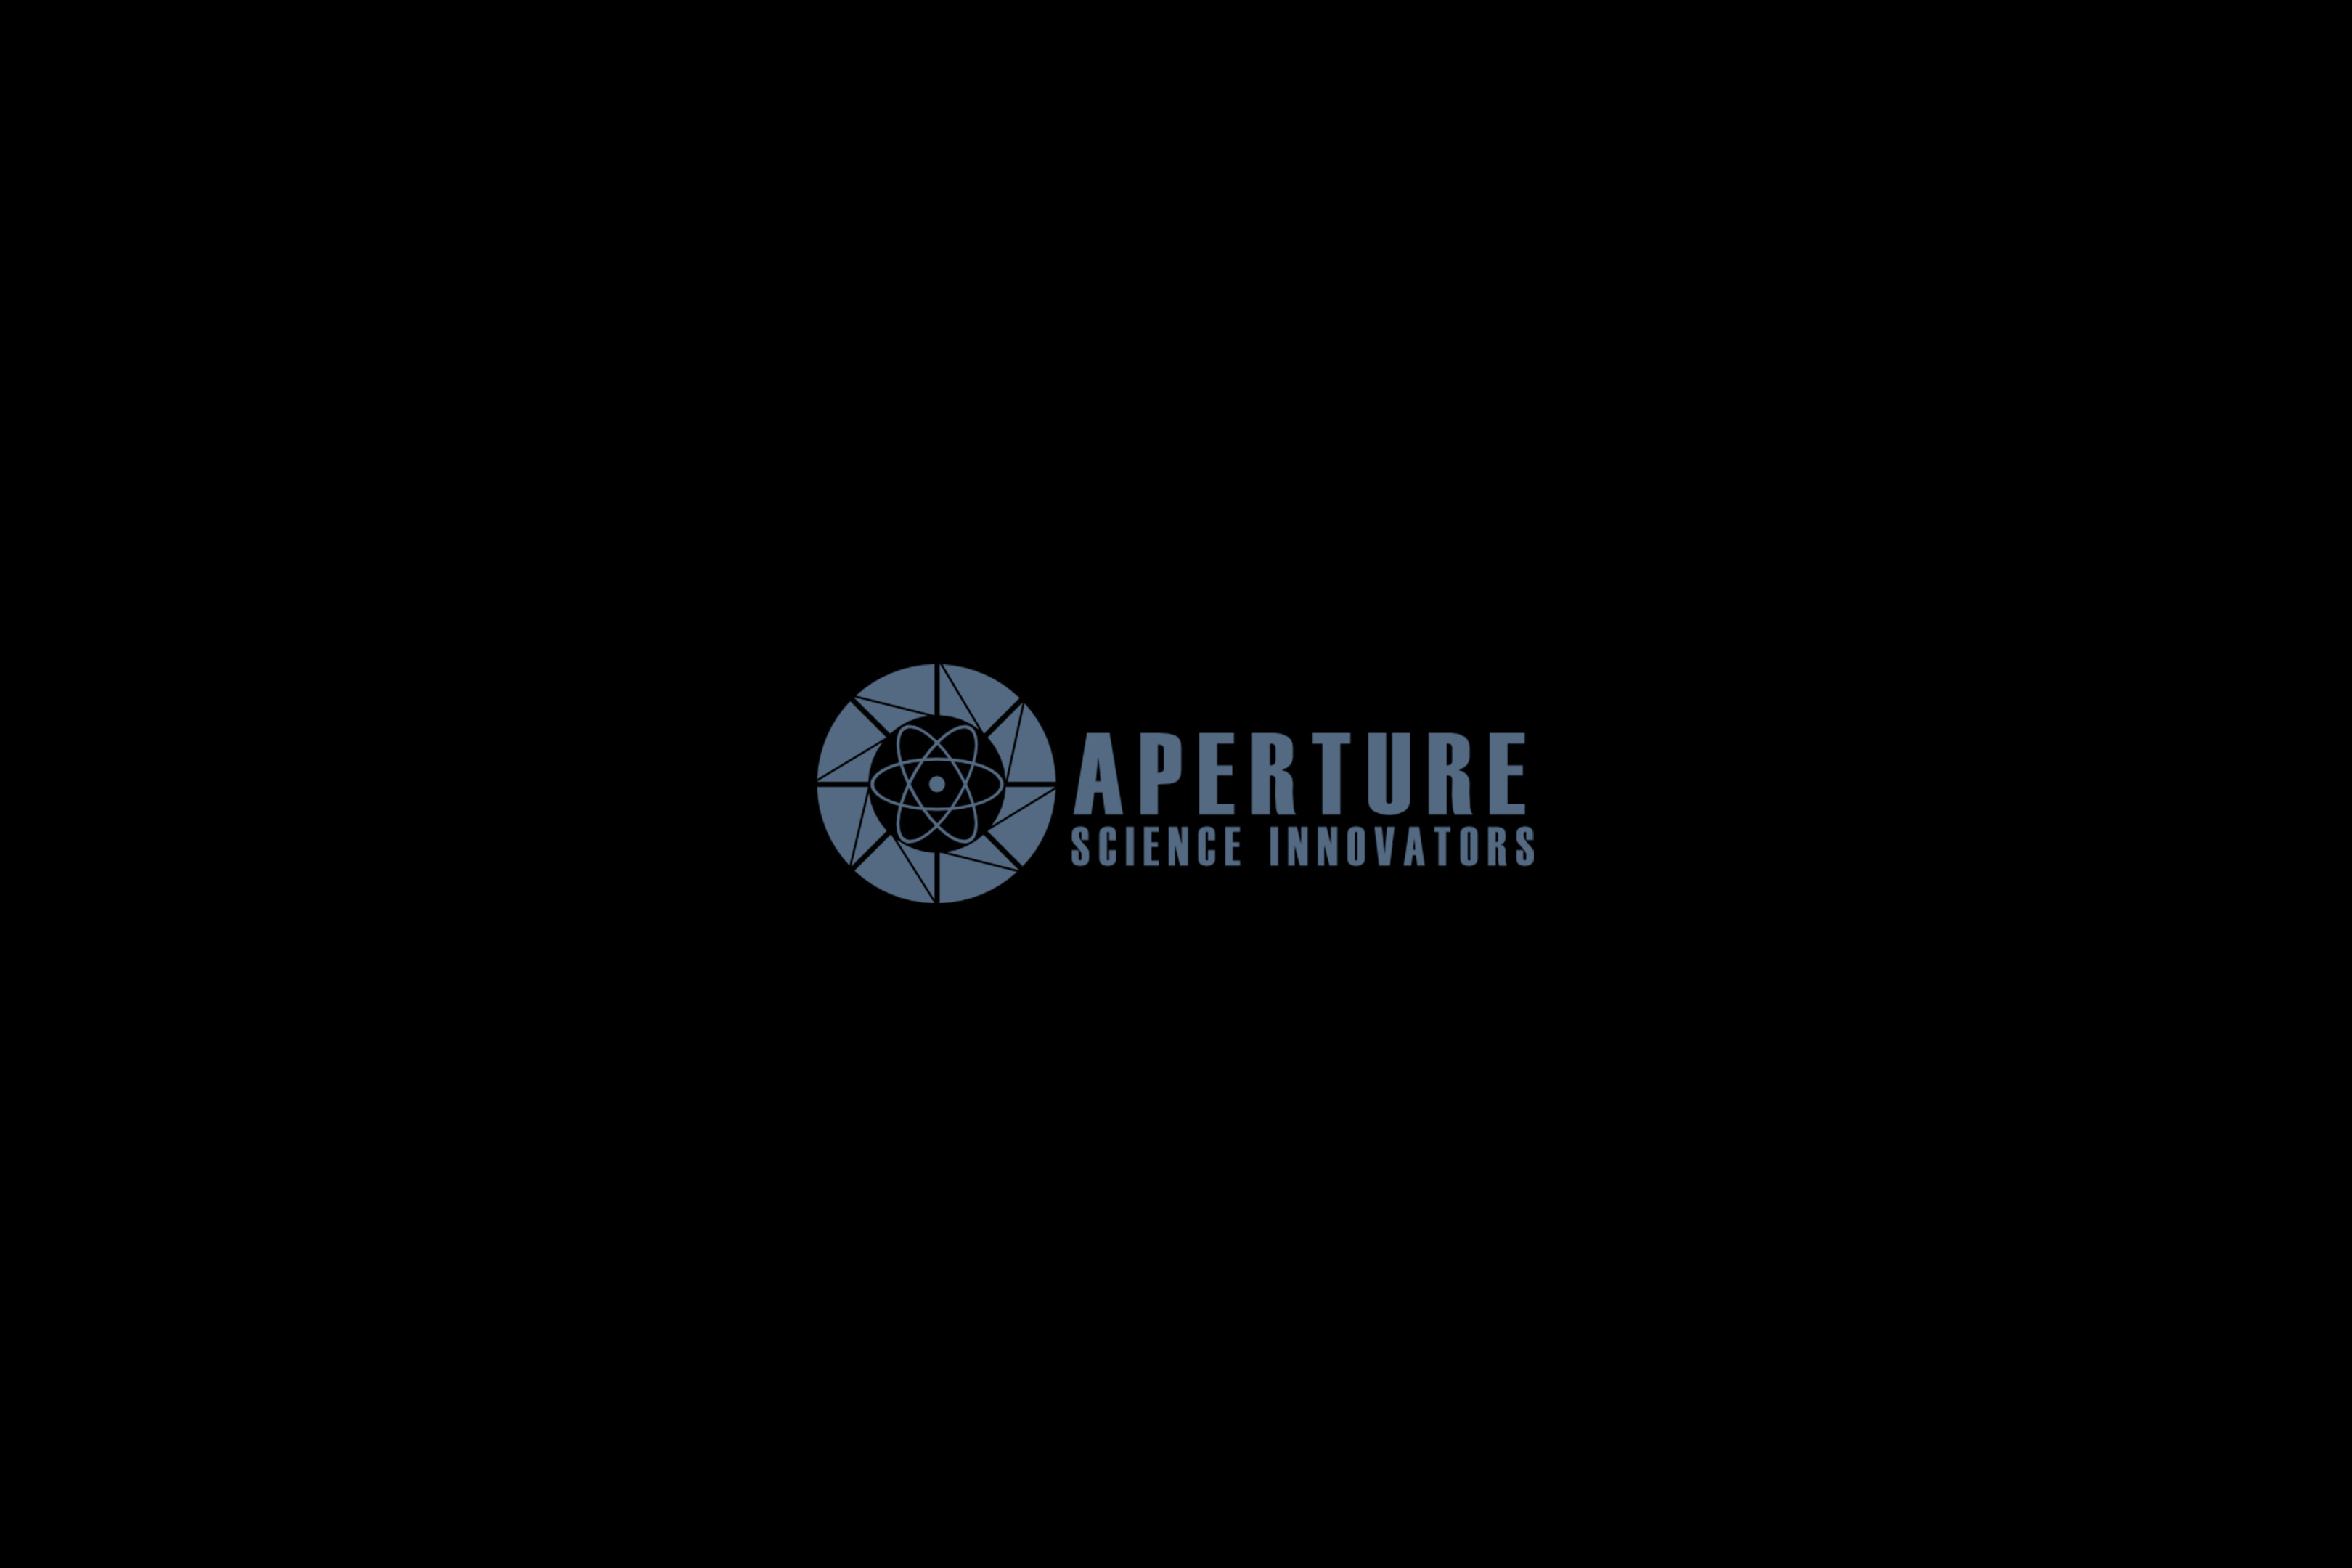 Aperture Science Background ·① WallpaperTagAperture Science Innovators Wallpaper